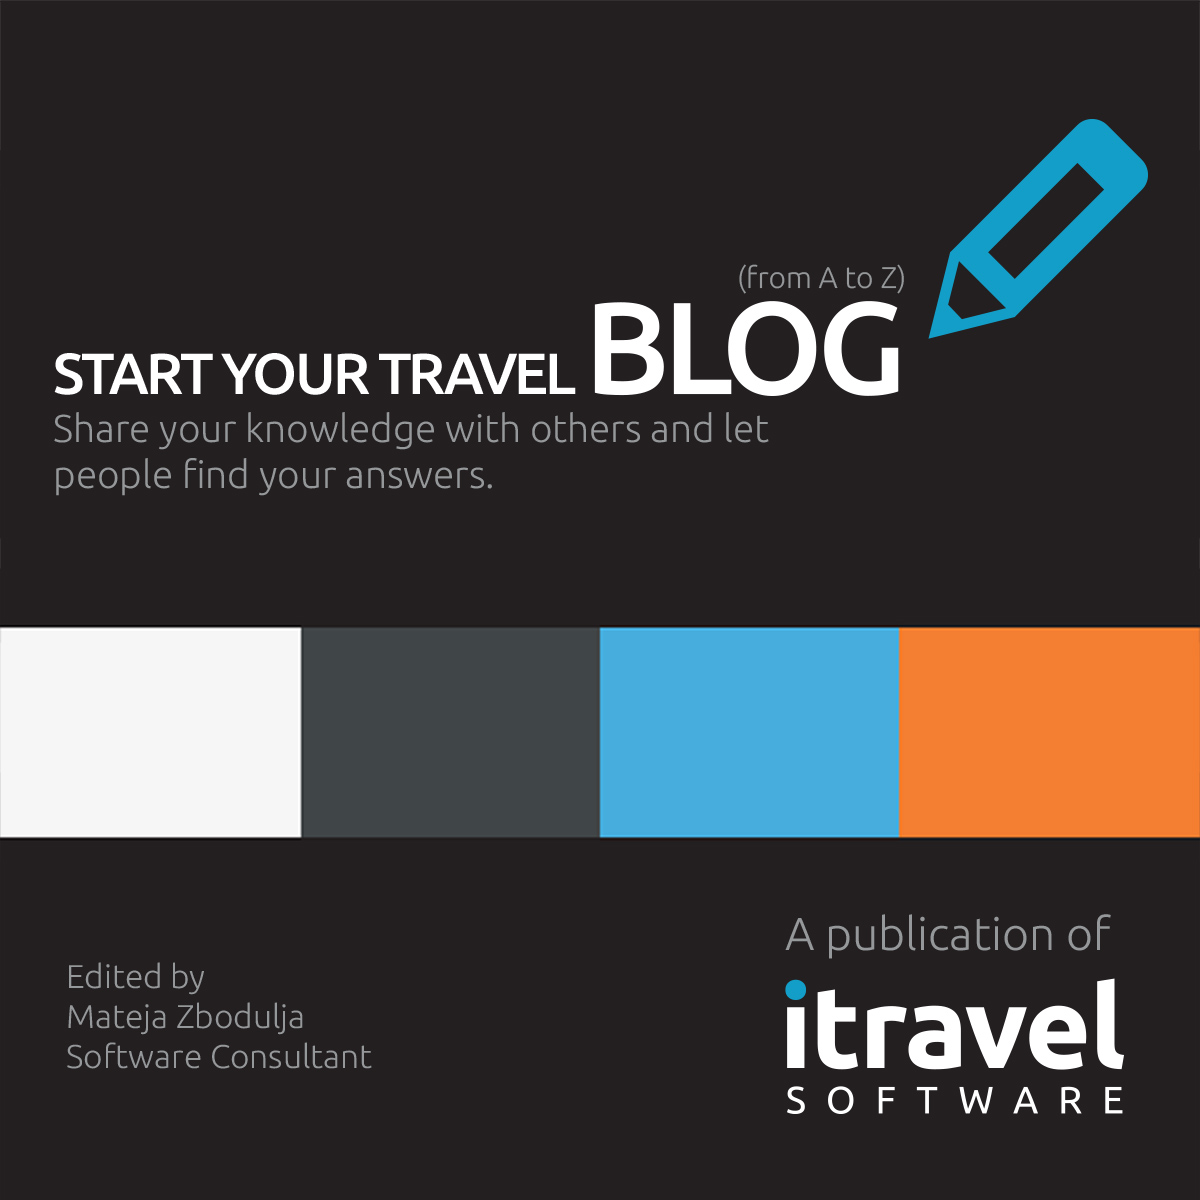 Start Your Travel Blog Free Ebook Share Knowledge Of This Product With Other Customers Be The